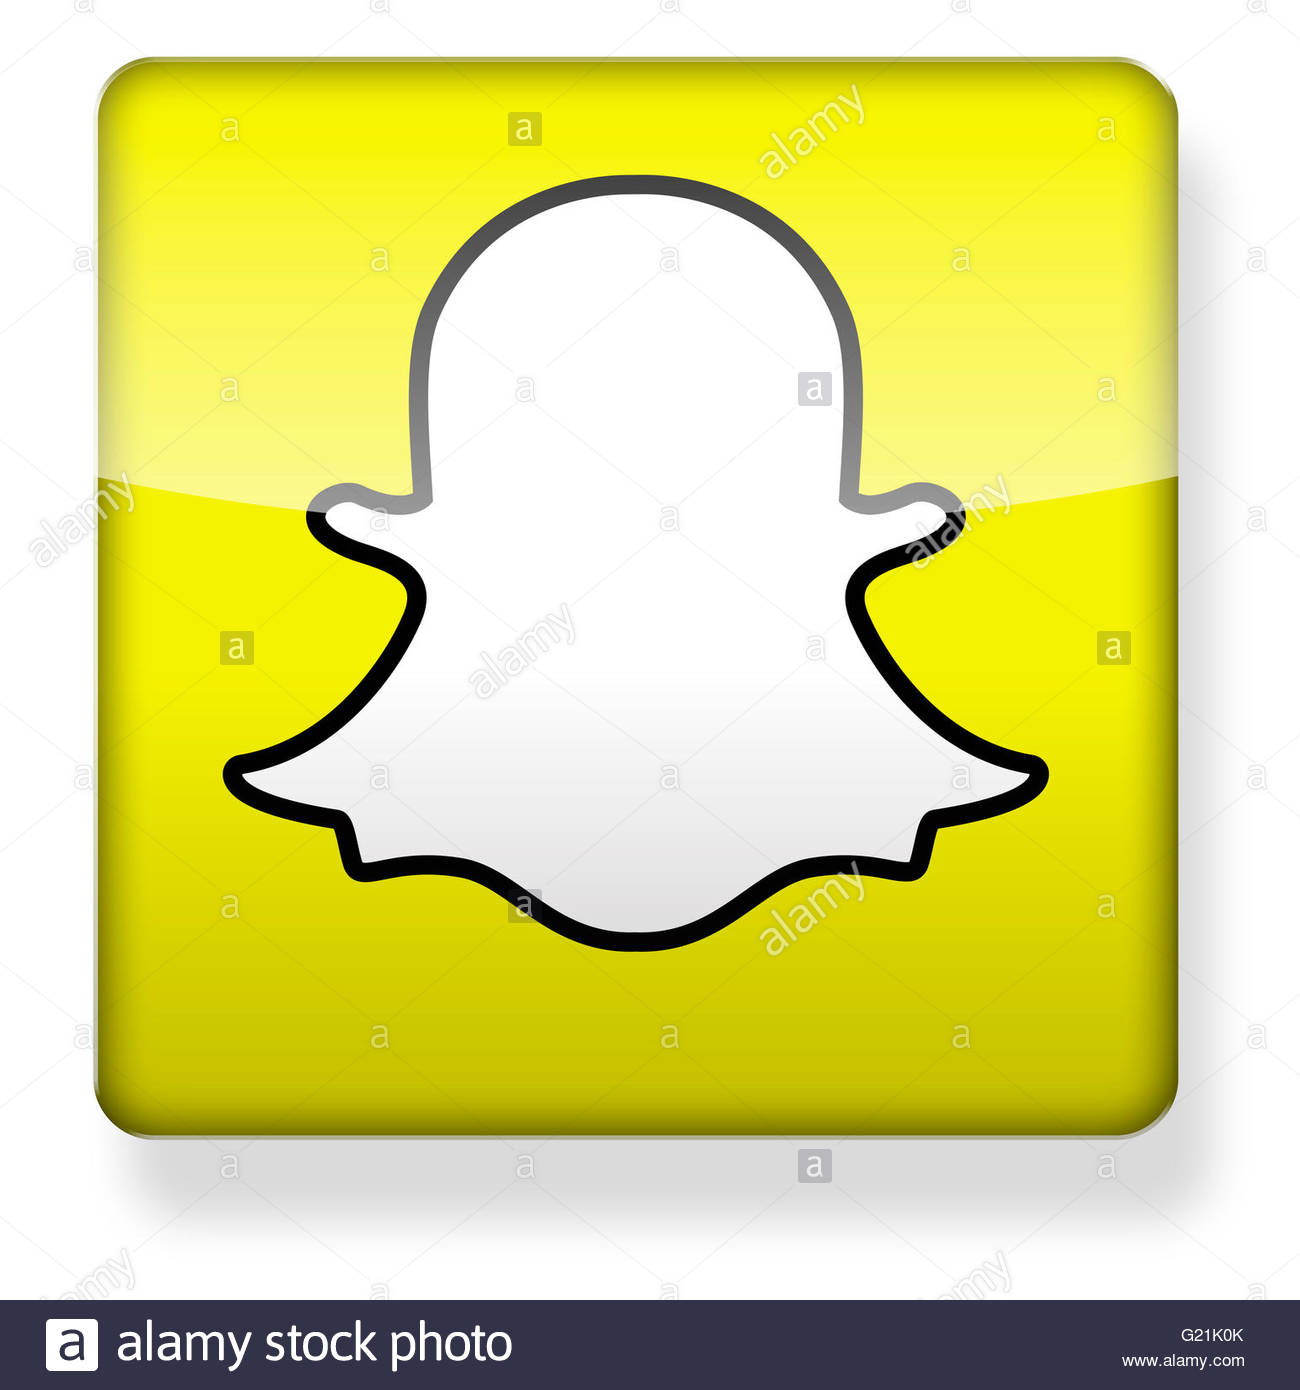 Snapchat app clipart clip art transparent library Snapchat Logo As An App Icon. Clipping Path Included Stock Photo ... clip art transparent library